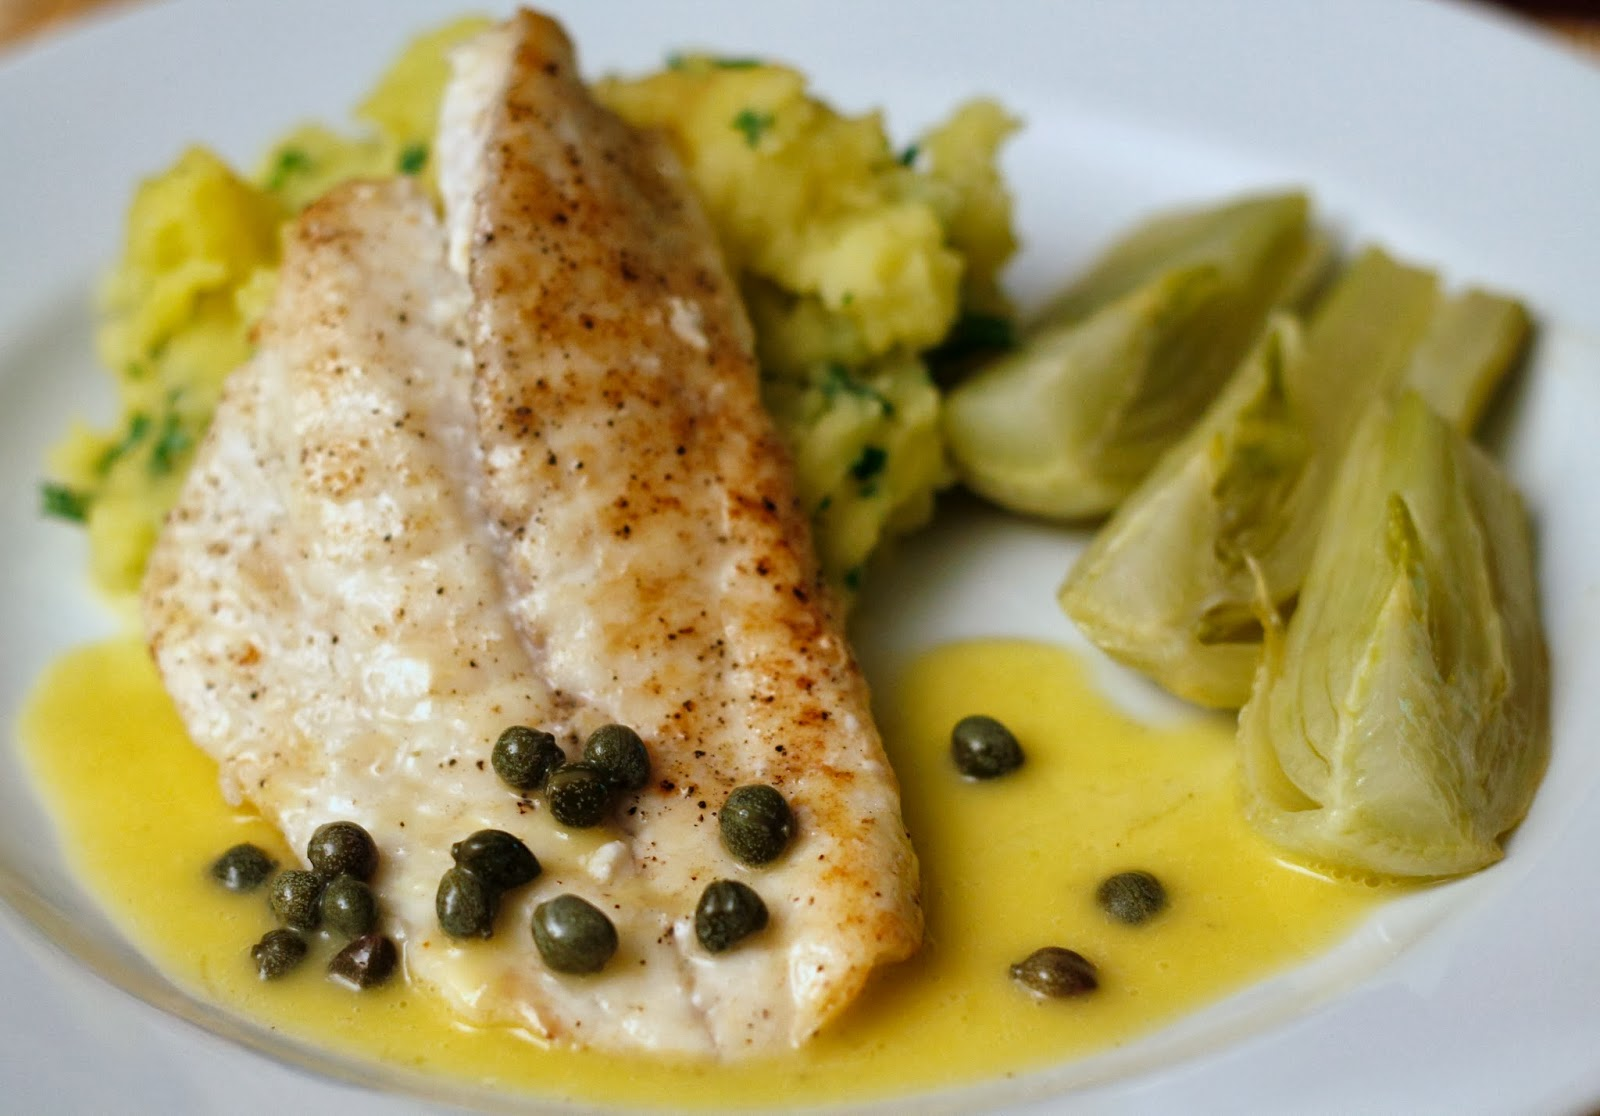 beurre blanc med persille